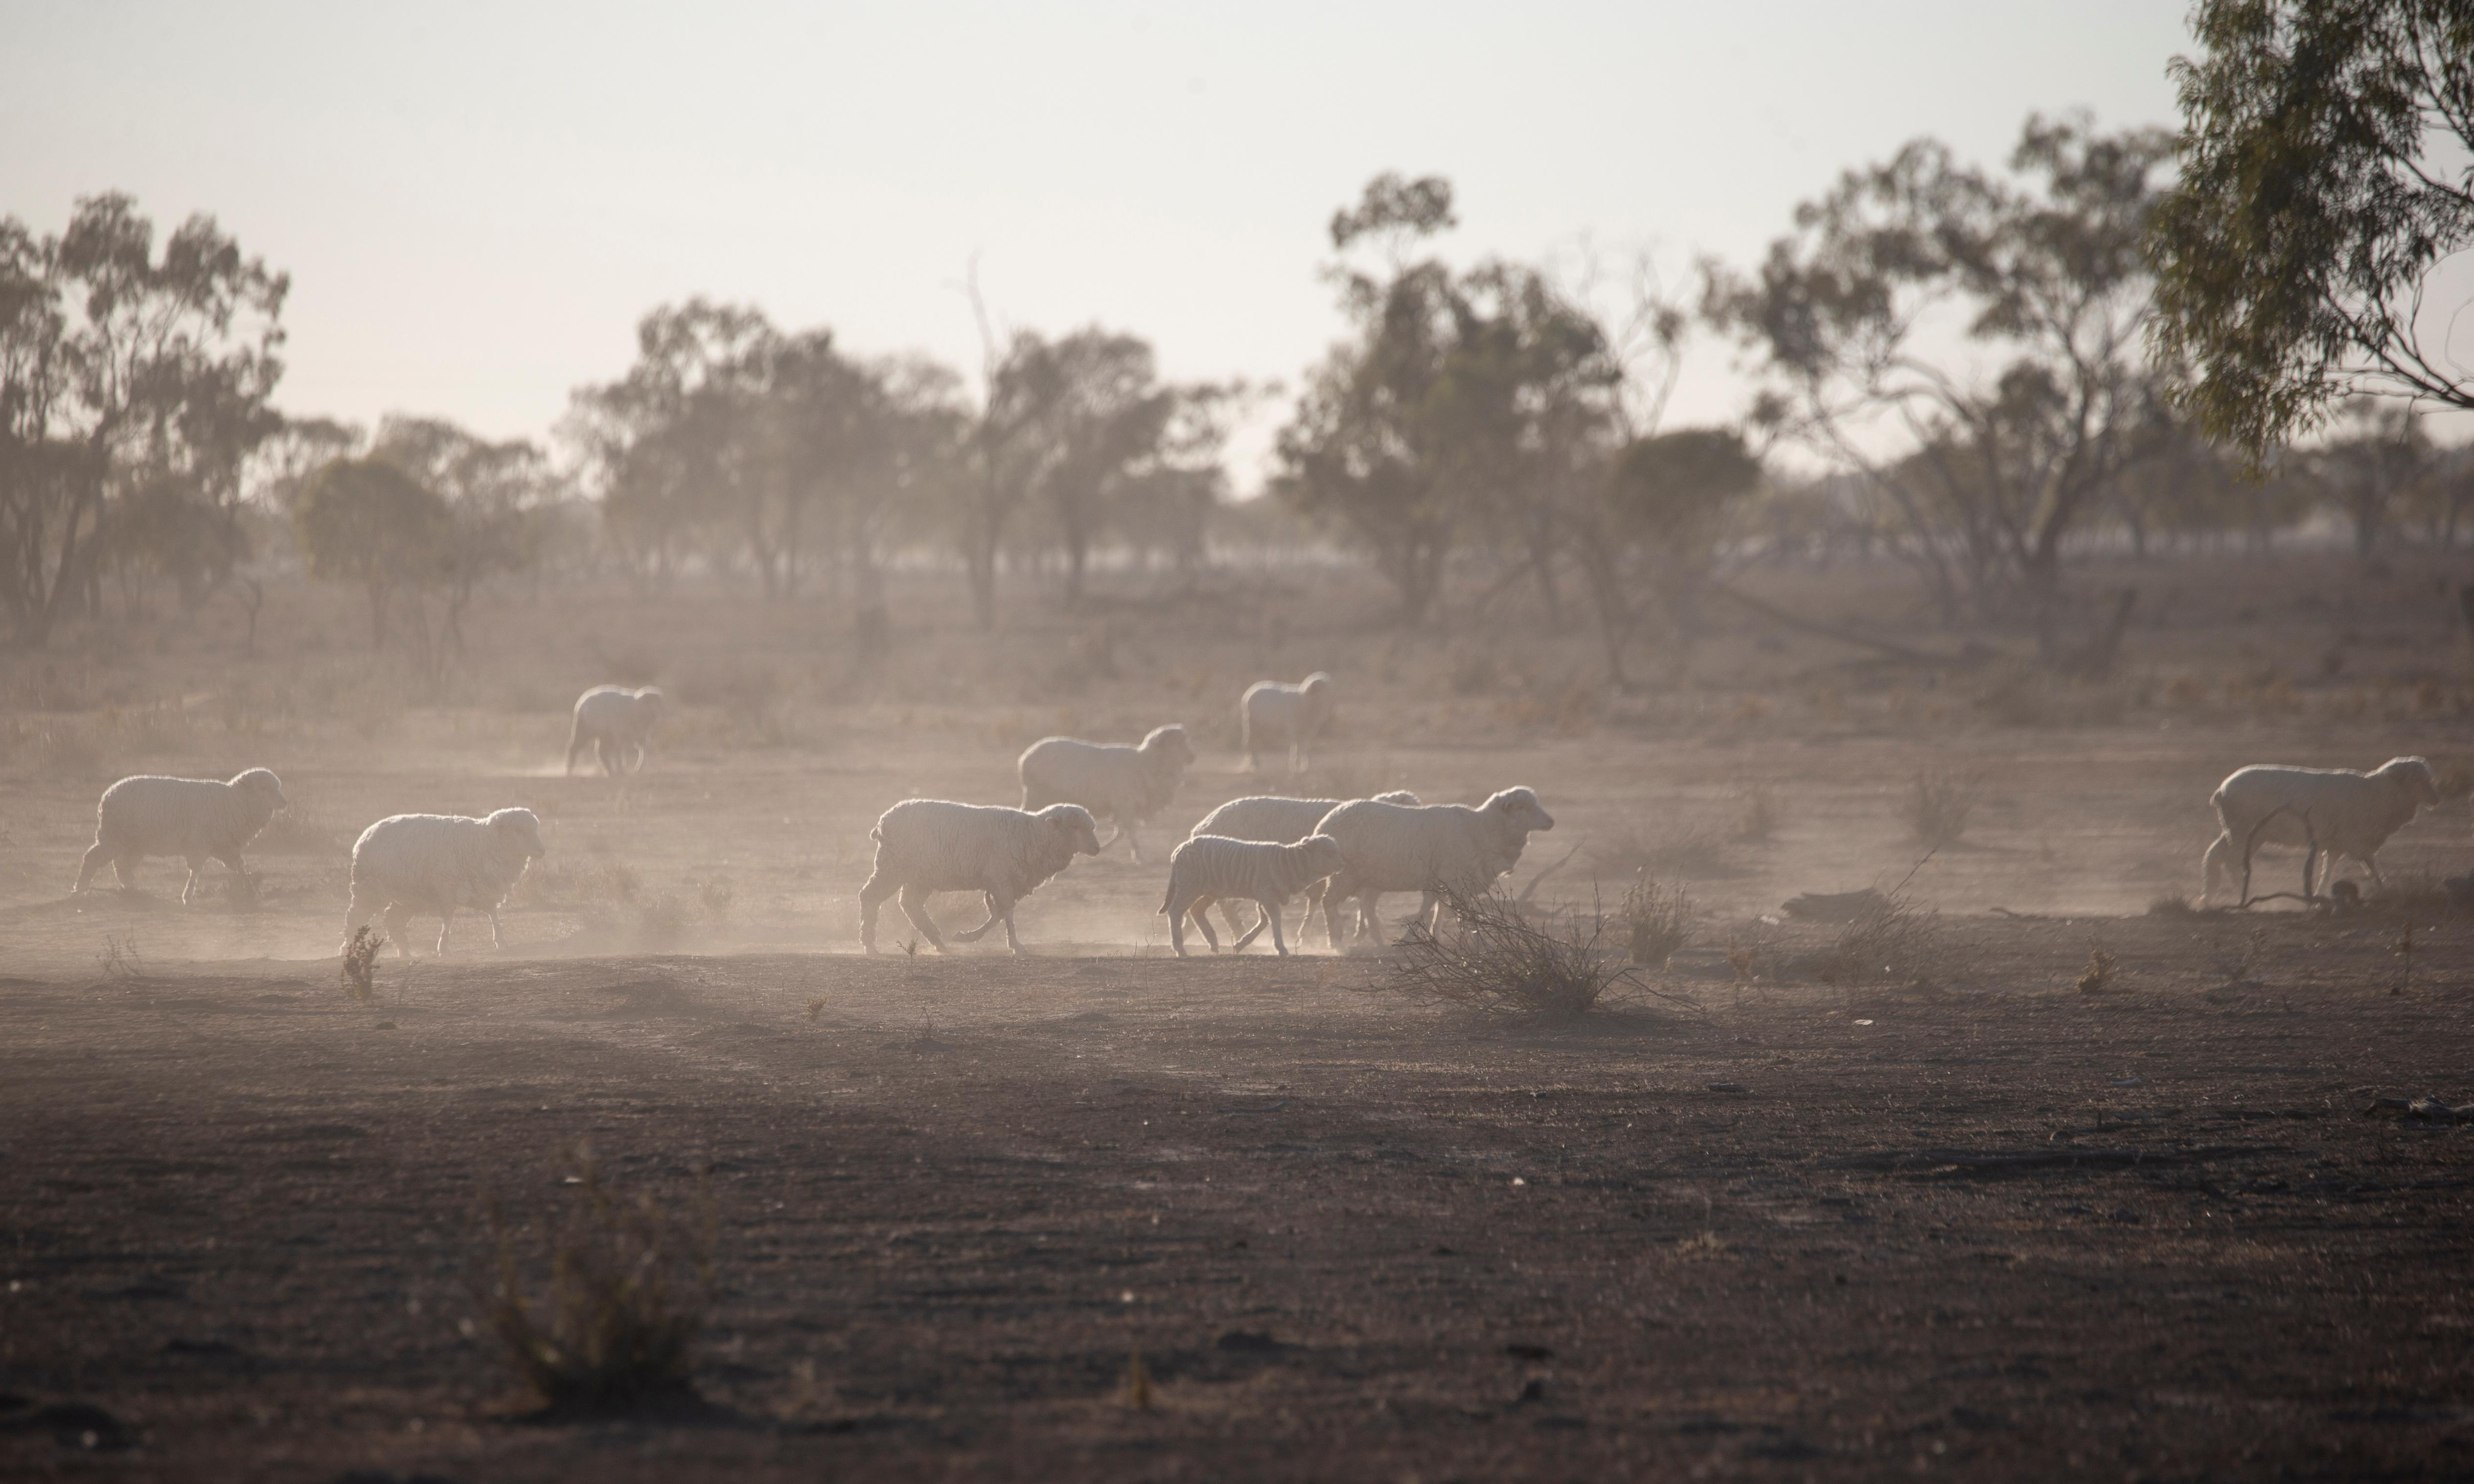 'I don't know how we come back from this': Australia's big dry sucks life from once-proud towns